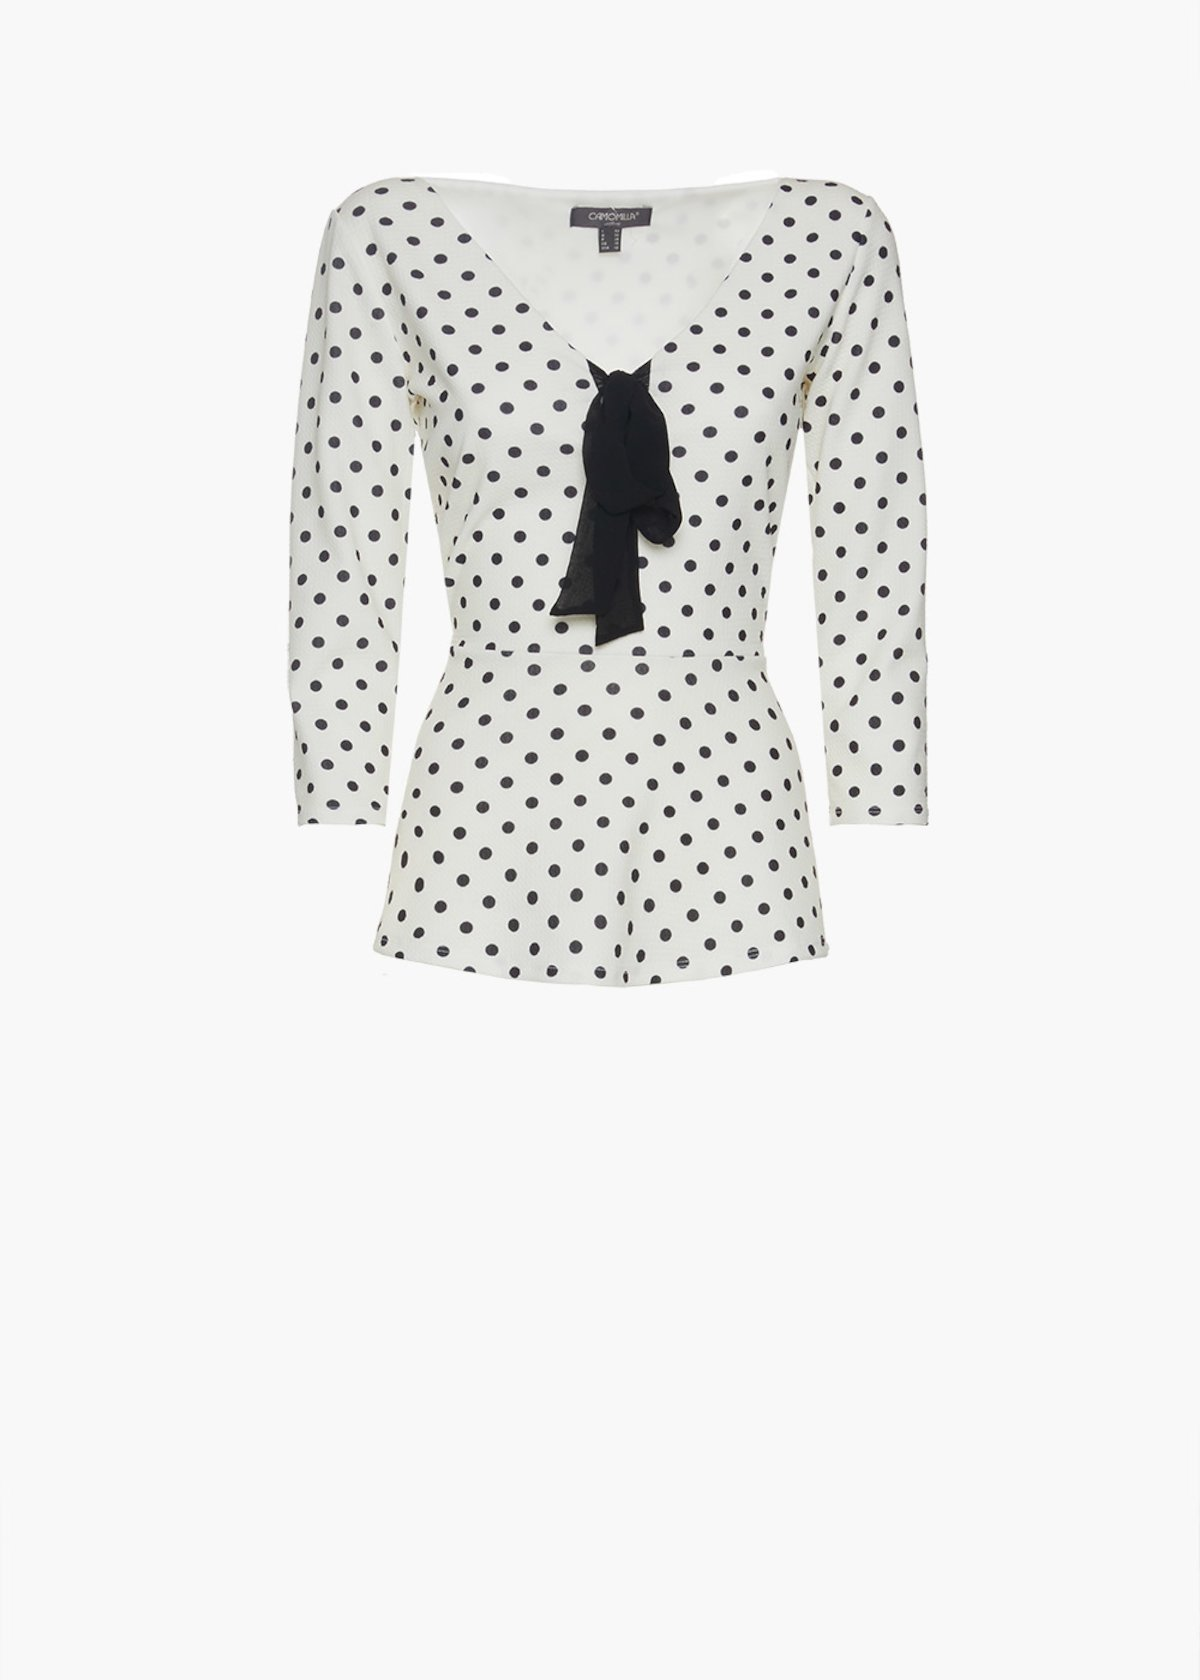 Sarik t-shirt with polka dot print and bow on the neck - White / Black Pois - Woman - Category image